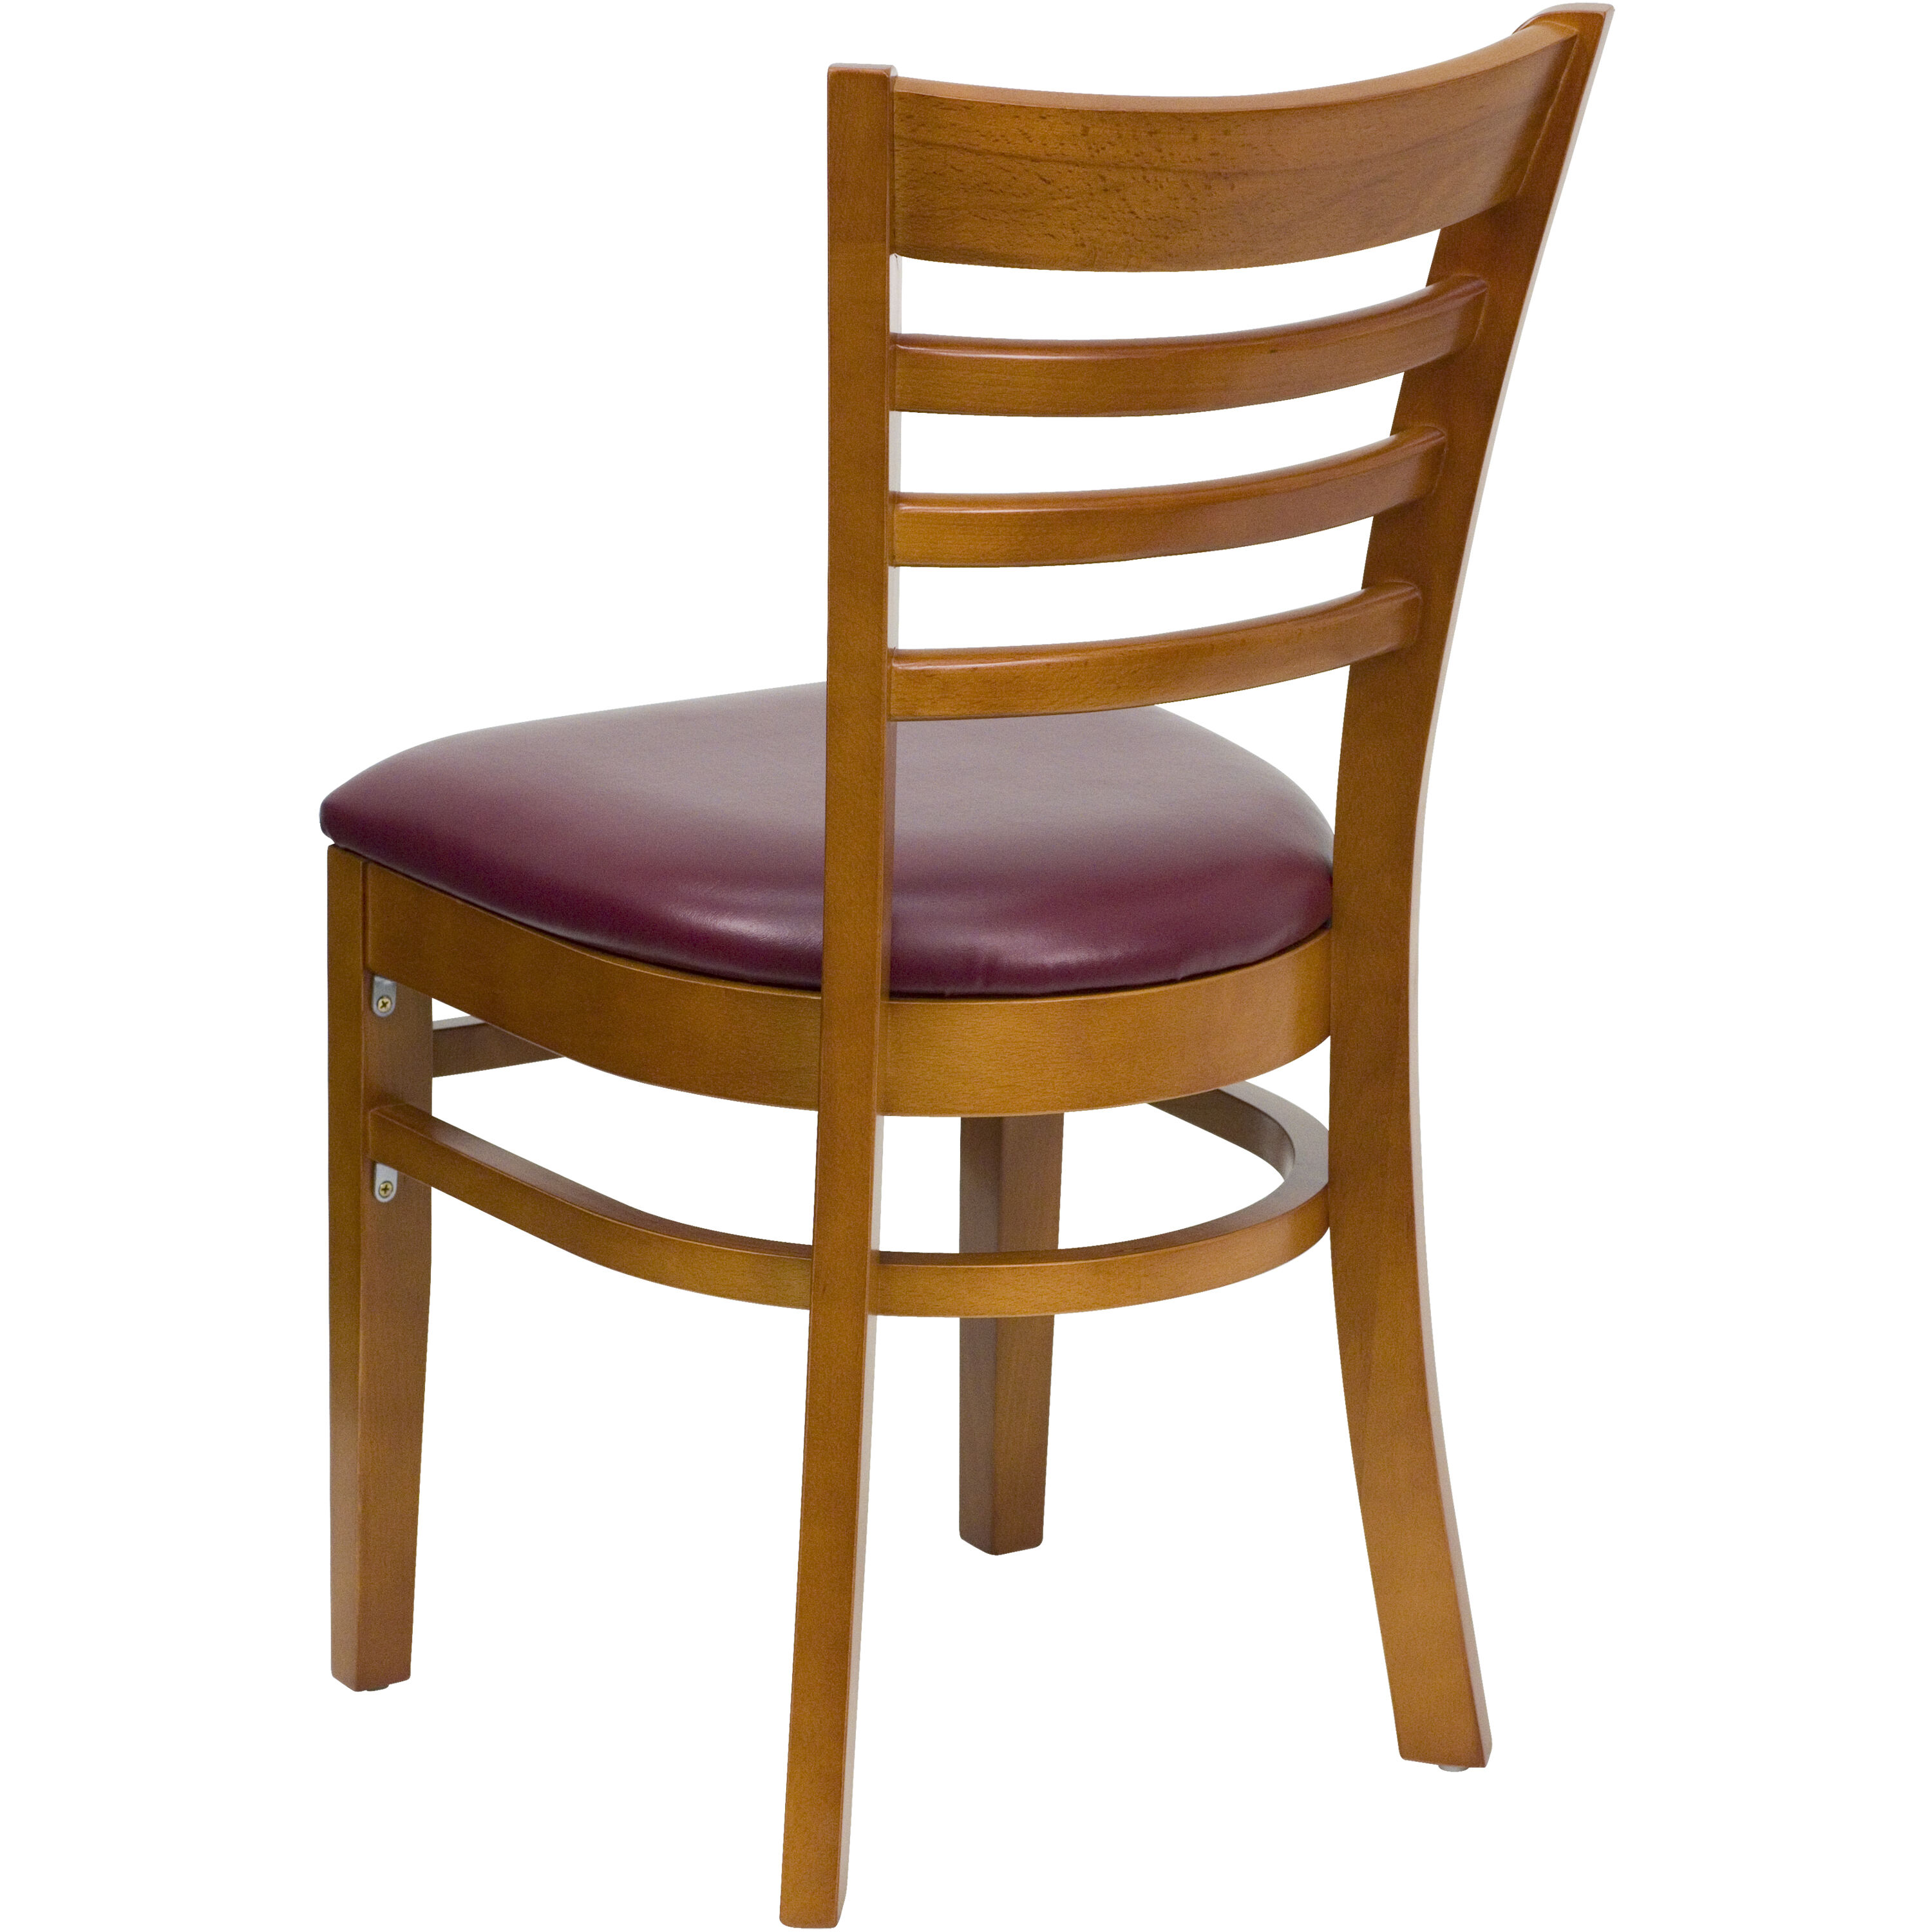 wooden restaurant chairs little tikes doll high chair cherry wood burg vinyl bfdh 8241cby tdr